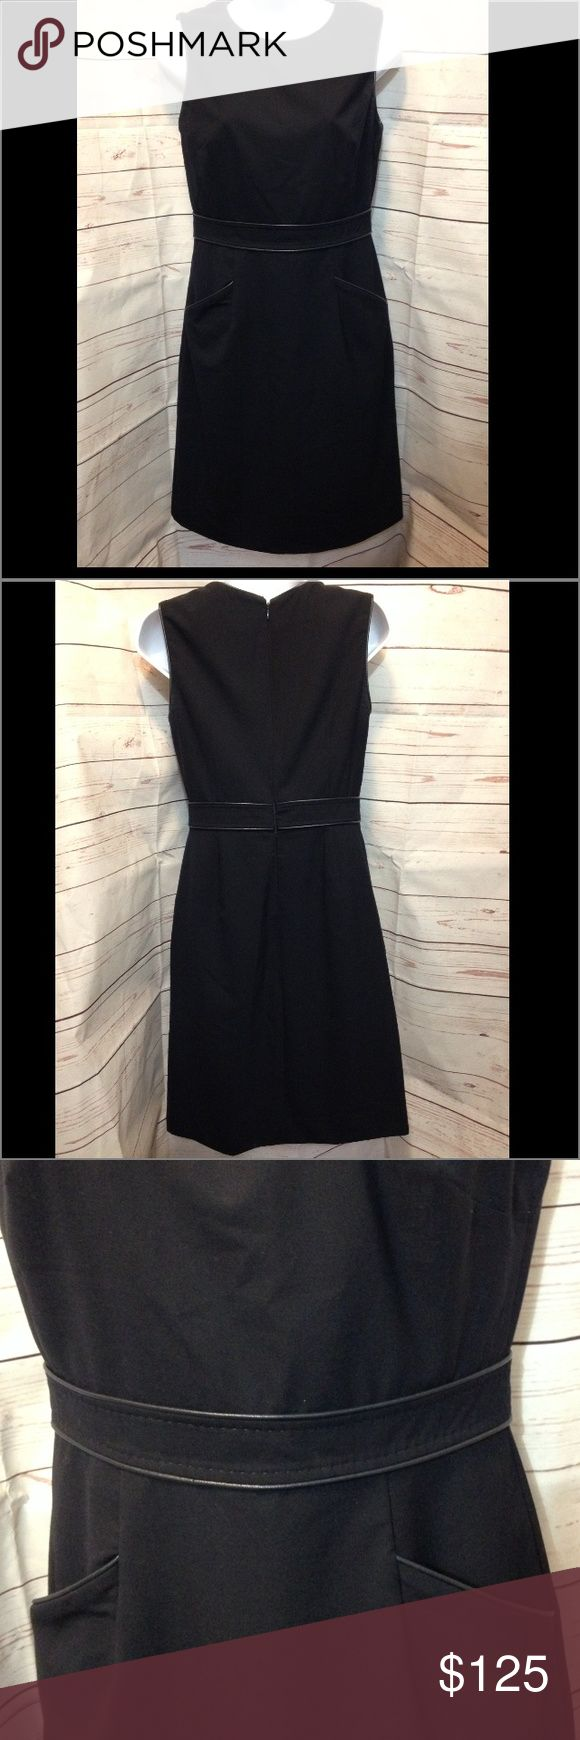 """Tory Burch navy blue dress Tory Burch navy blue dress.  Gorgeous, fully lined navy blue sheath dress.  Two front pockets and leather trim around waist, arms, neckline and pockets.  Full zip up back with hook & eye closure.  37.5"""" long, 15.5"""" across chest, 13.5"""" at waist.  Excellent condition! Tory Burch Dresses Midi"""